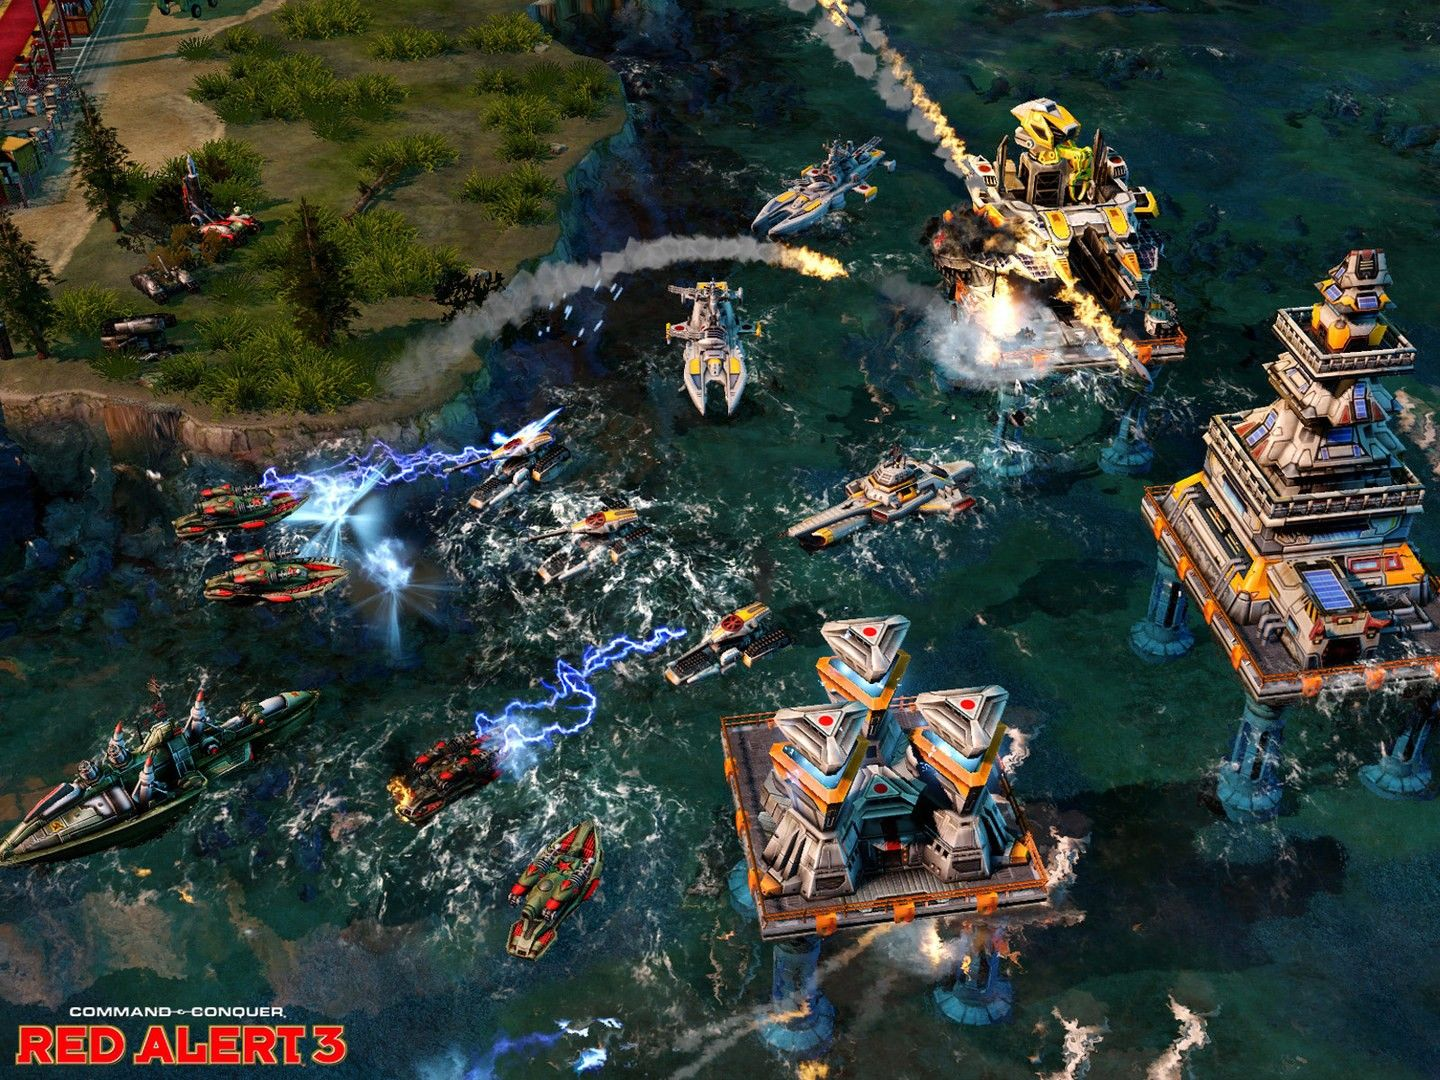 Command  conquer: red alert 3 uprising command  conquer: red alert 3 uprising